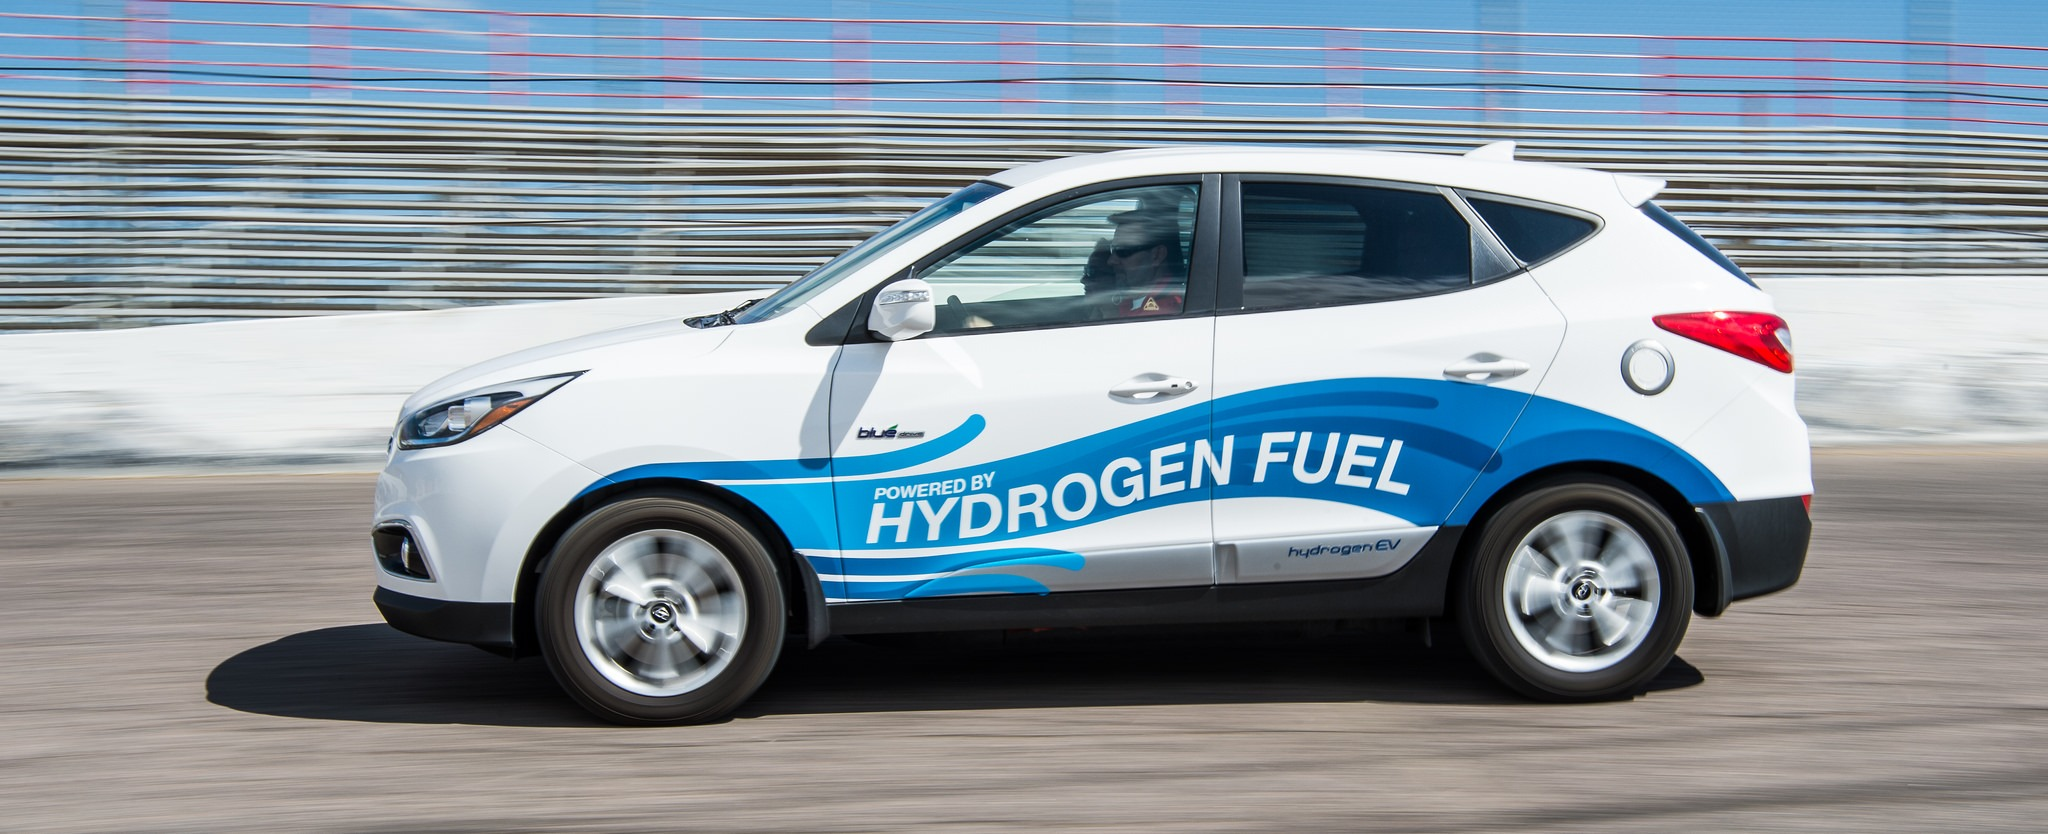 The Benefits Of Owning A Hydrogen Vehicle And The Advantages Of Utilizing Fuel Cells